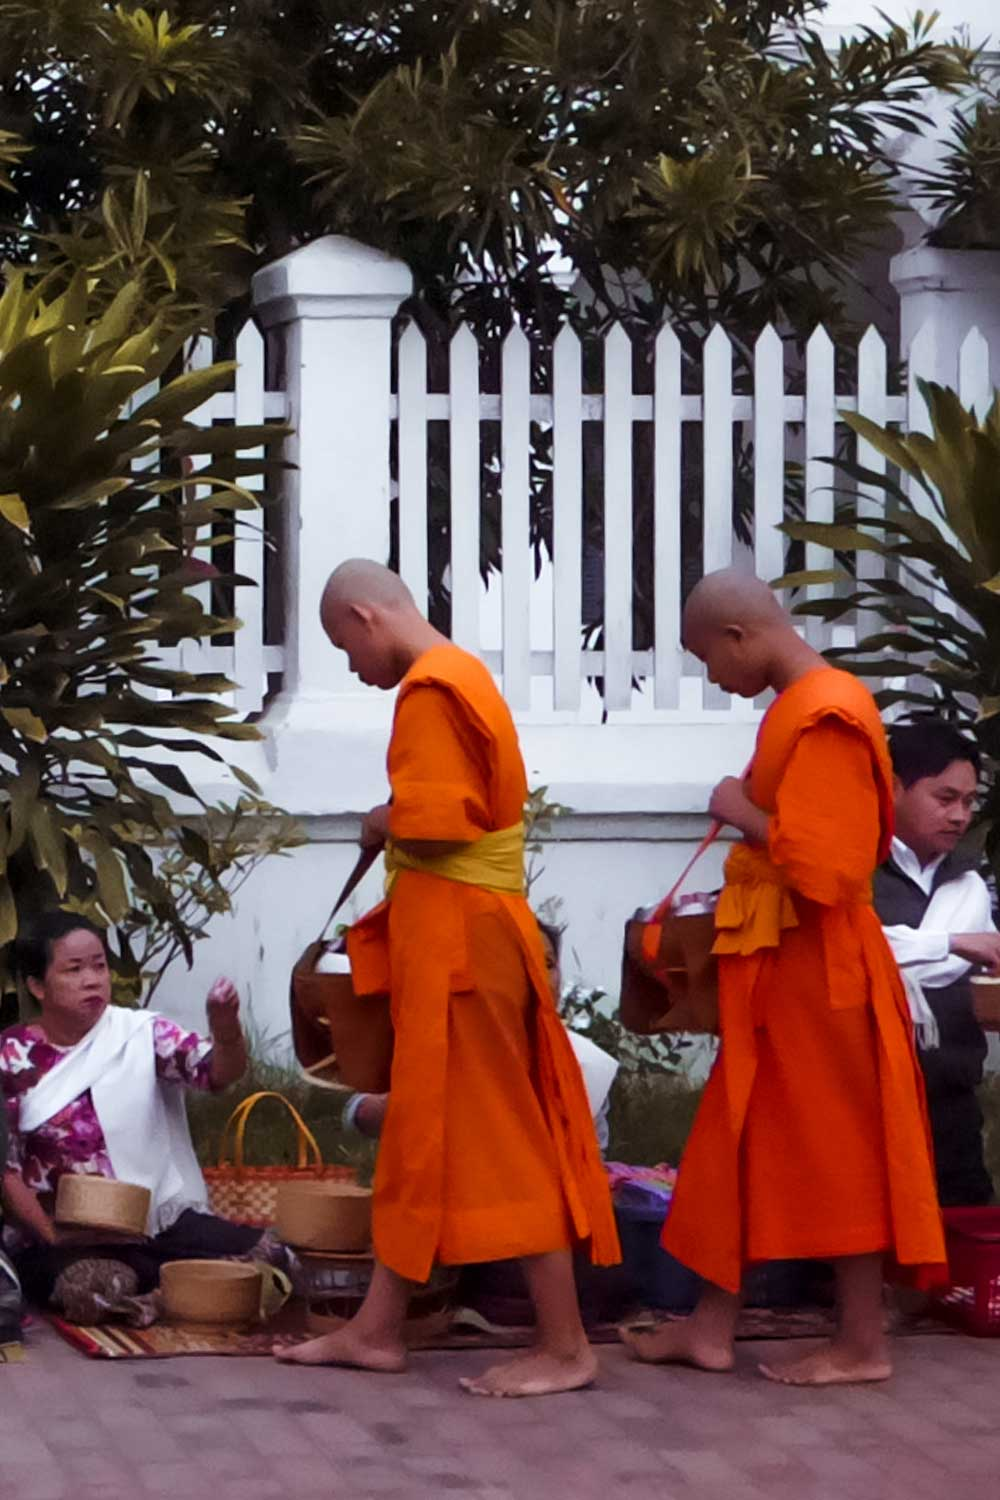 Luang Prabang is the highlight of any Northern Laos itinerary